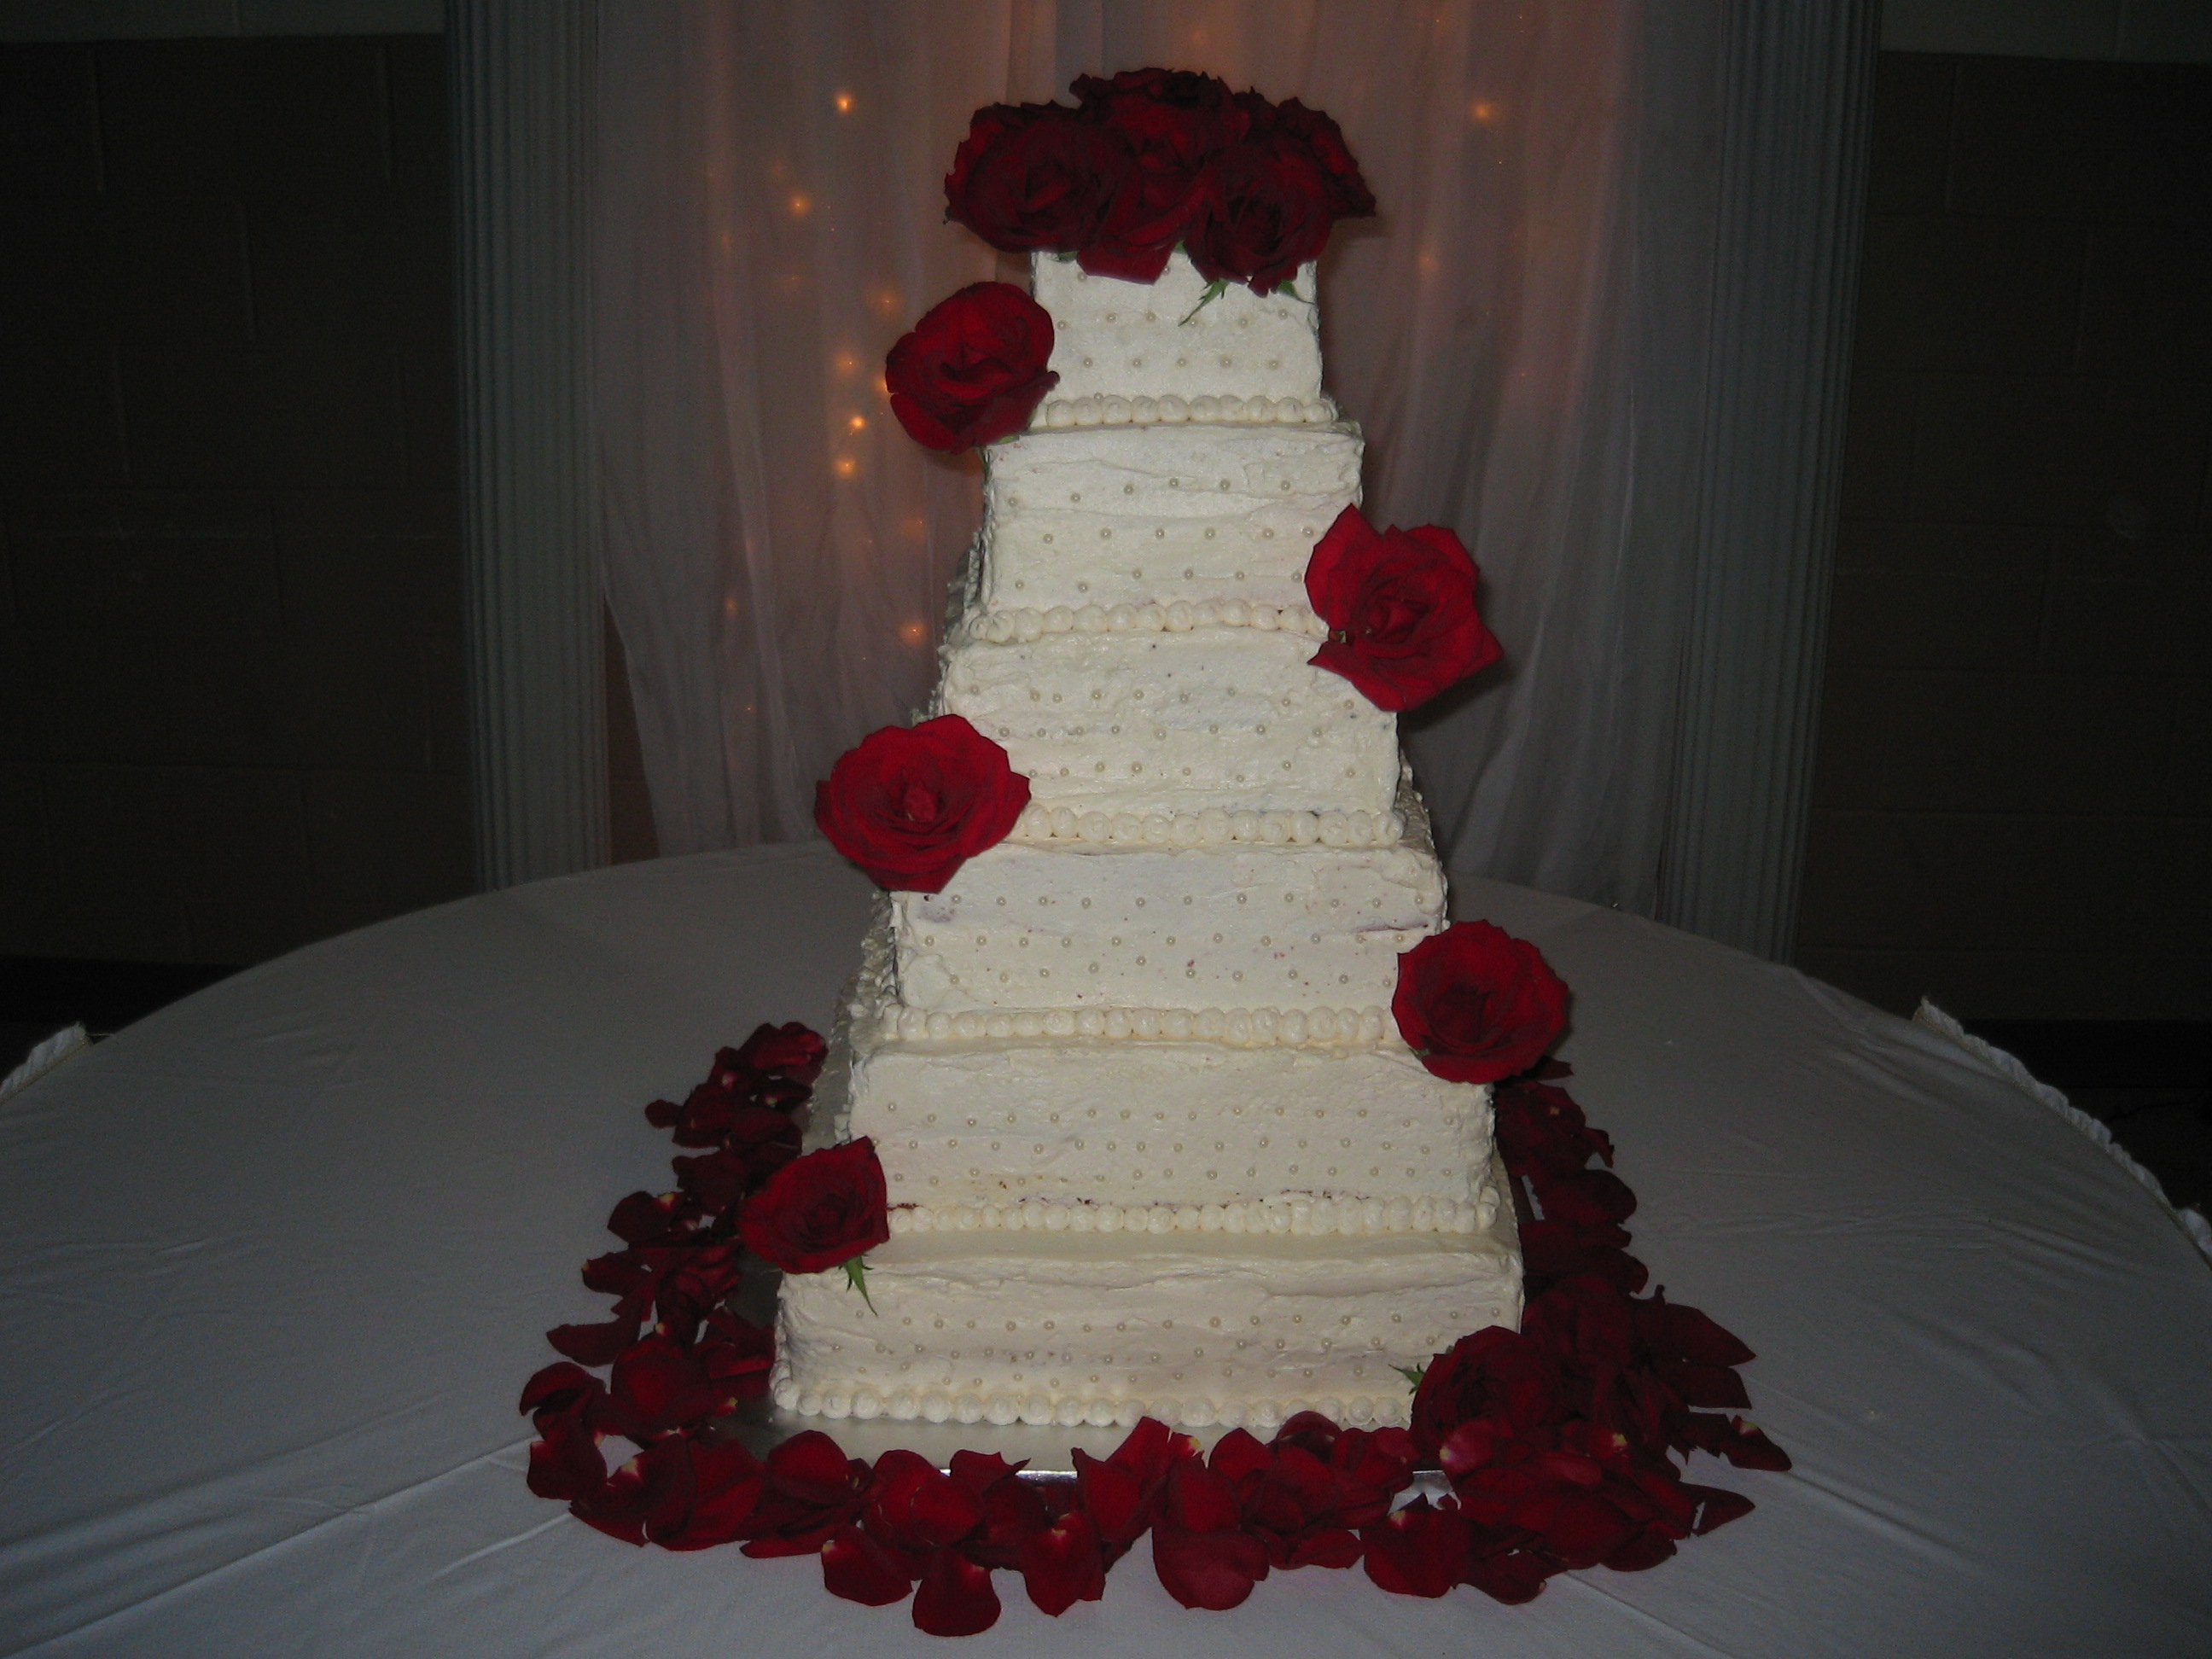 Square Stacked 6-Tier Cake with Pearls and Roses